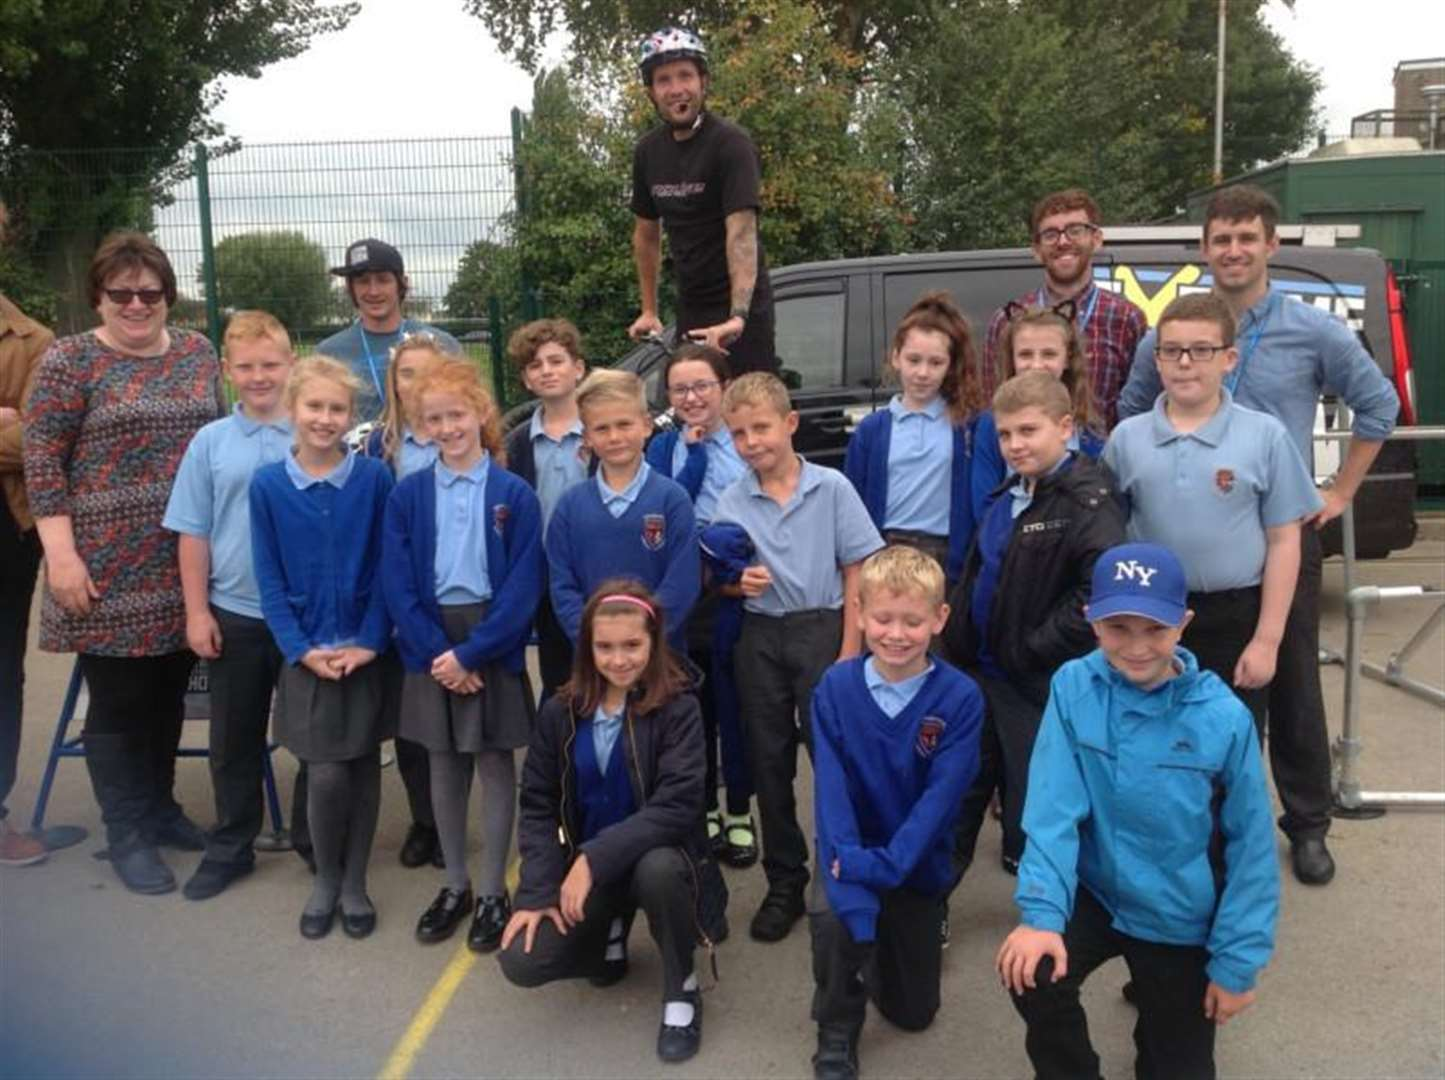 Thrilling day for pupils at Spalding's Monkshouse Primary School